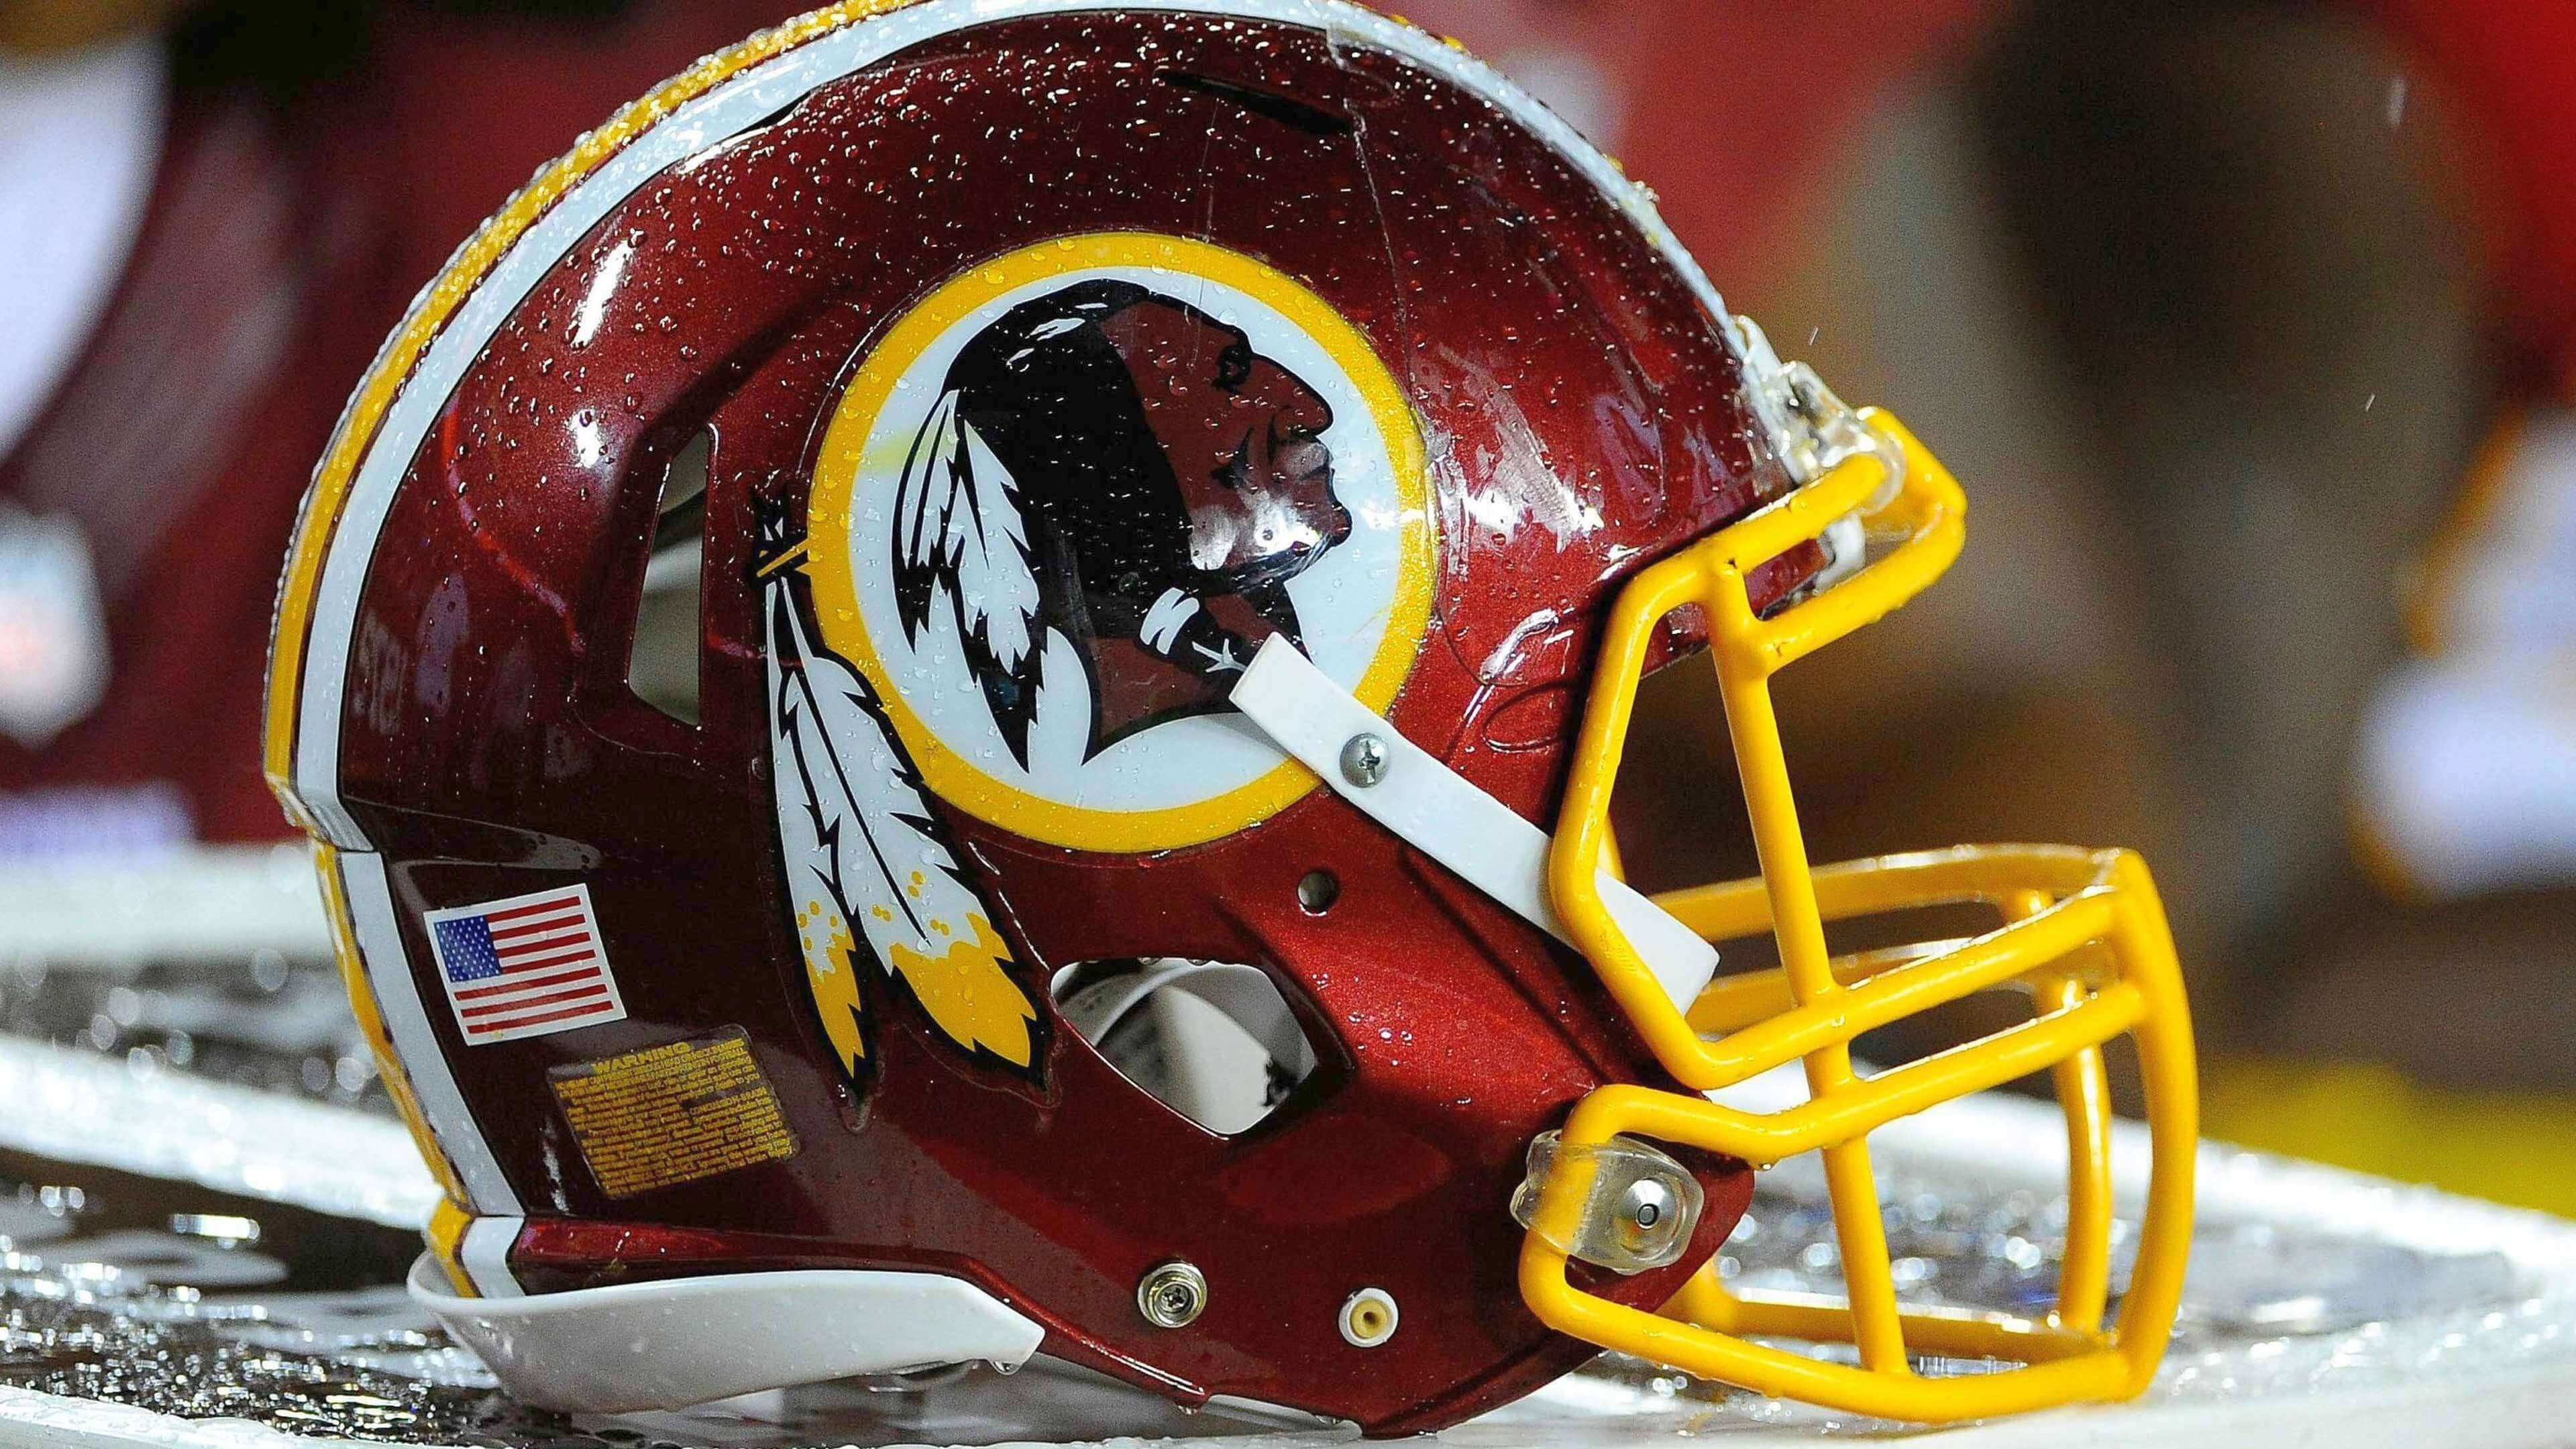 3840x2160 Washington Redskins Helmet Images Ultra HD 4K